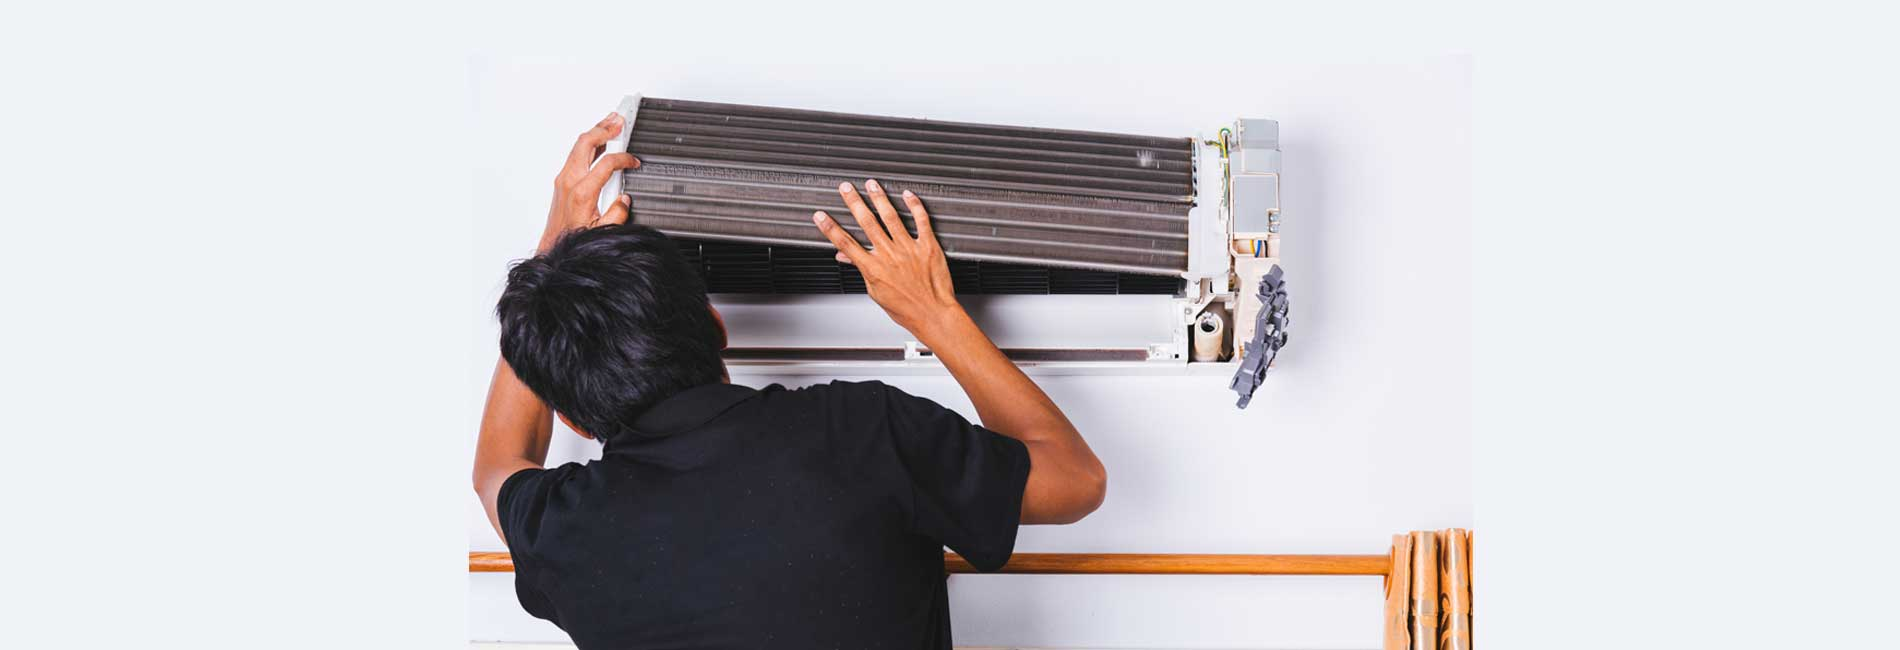 LG AC Uninstallation and Installation in Injambakkam